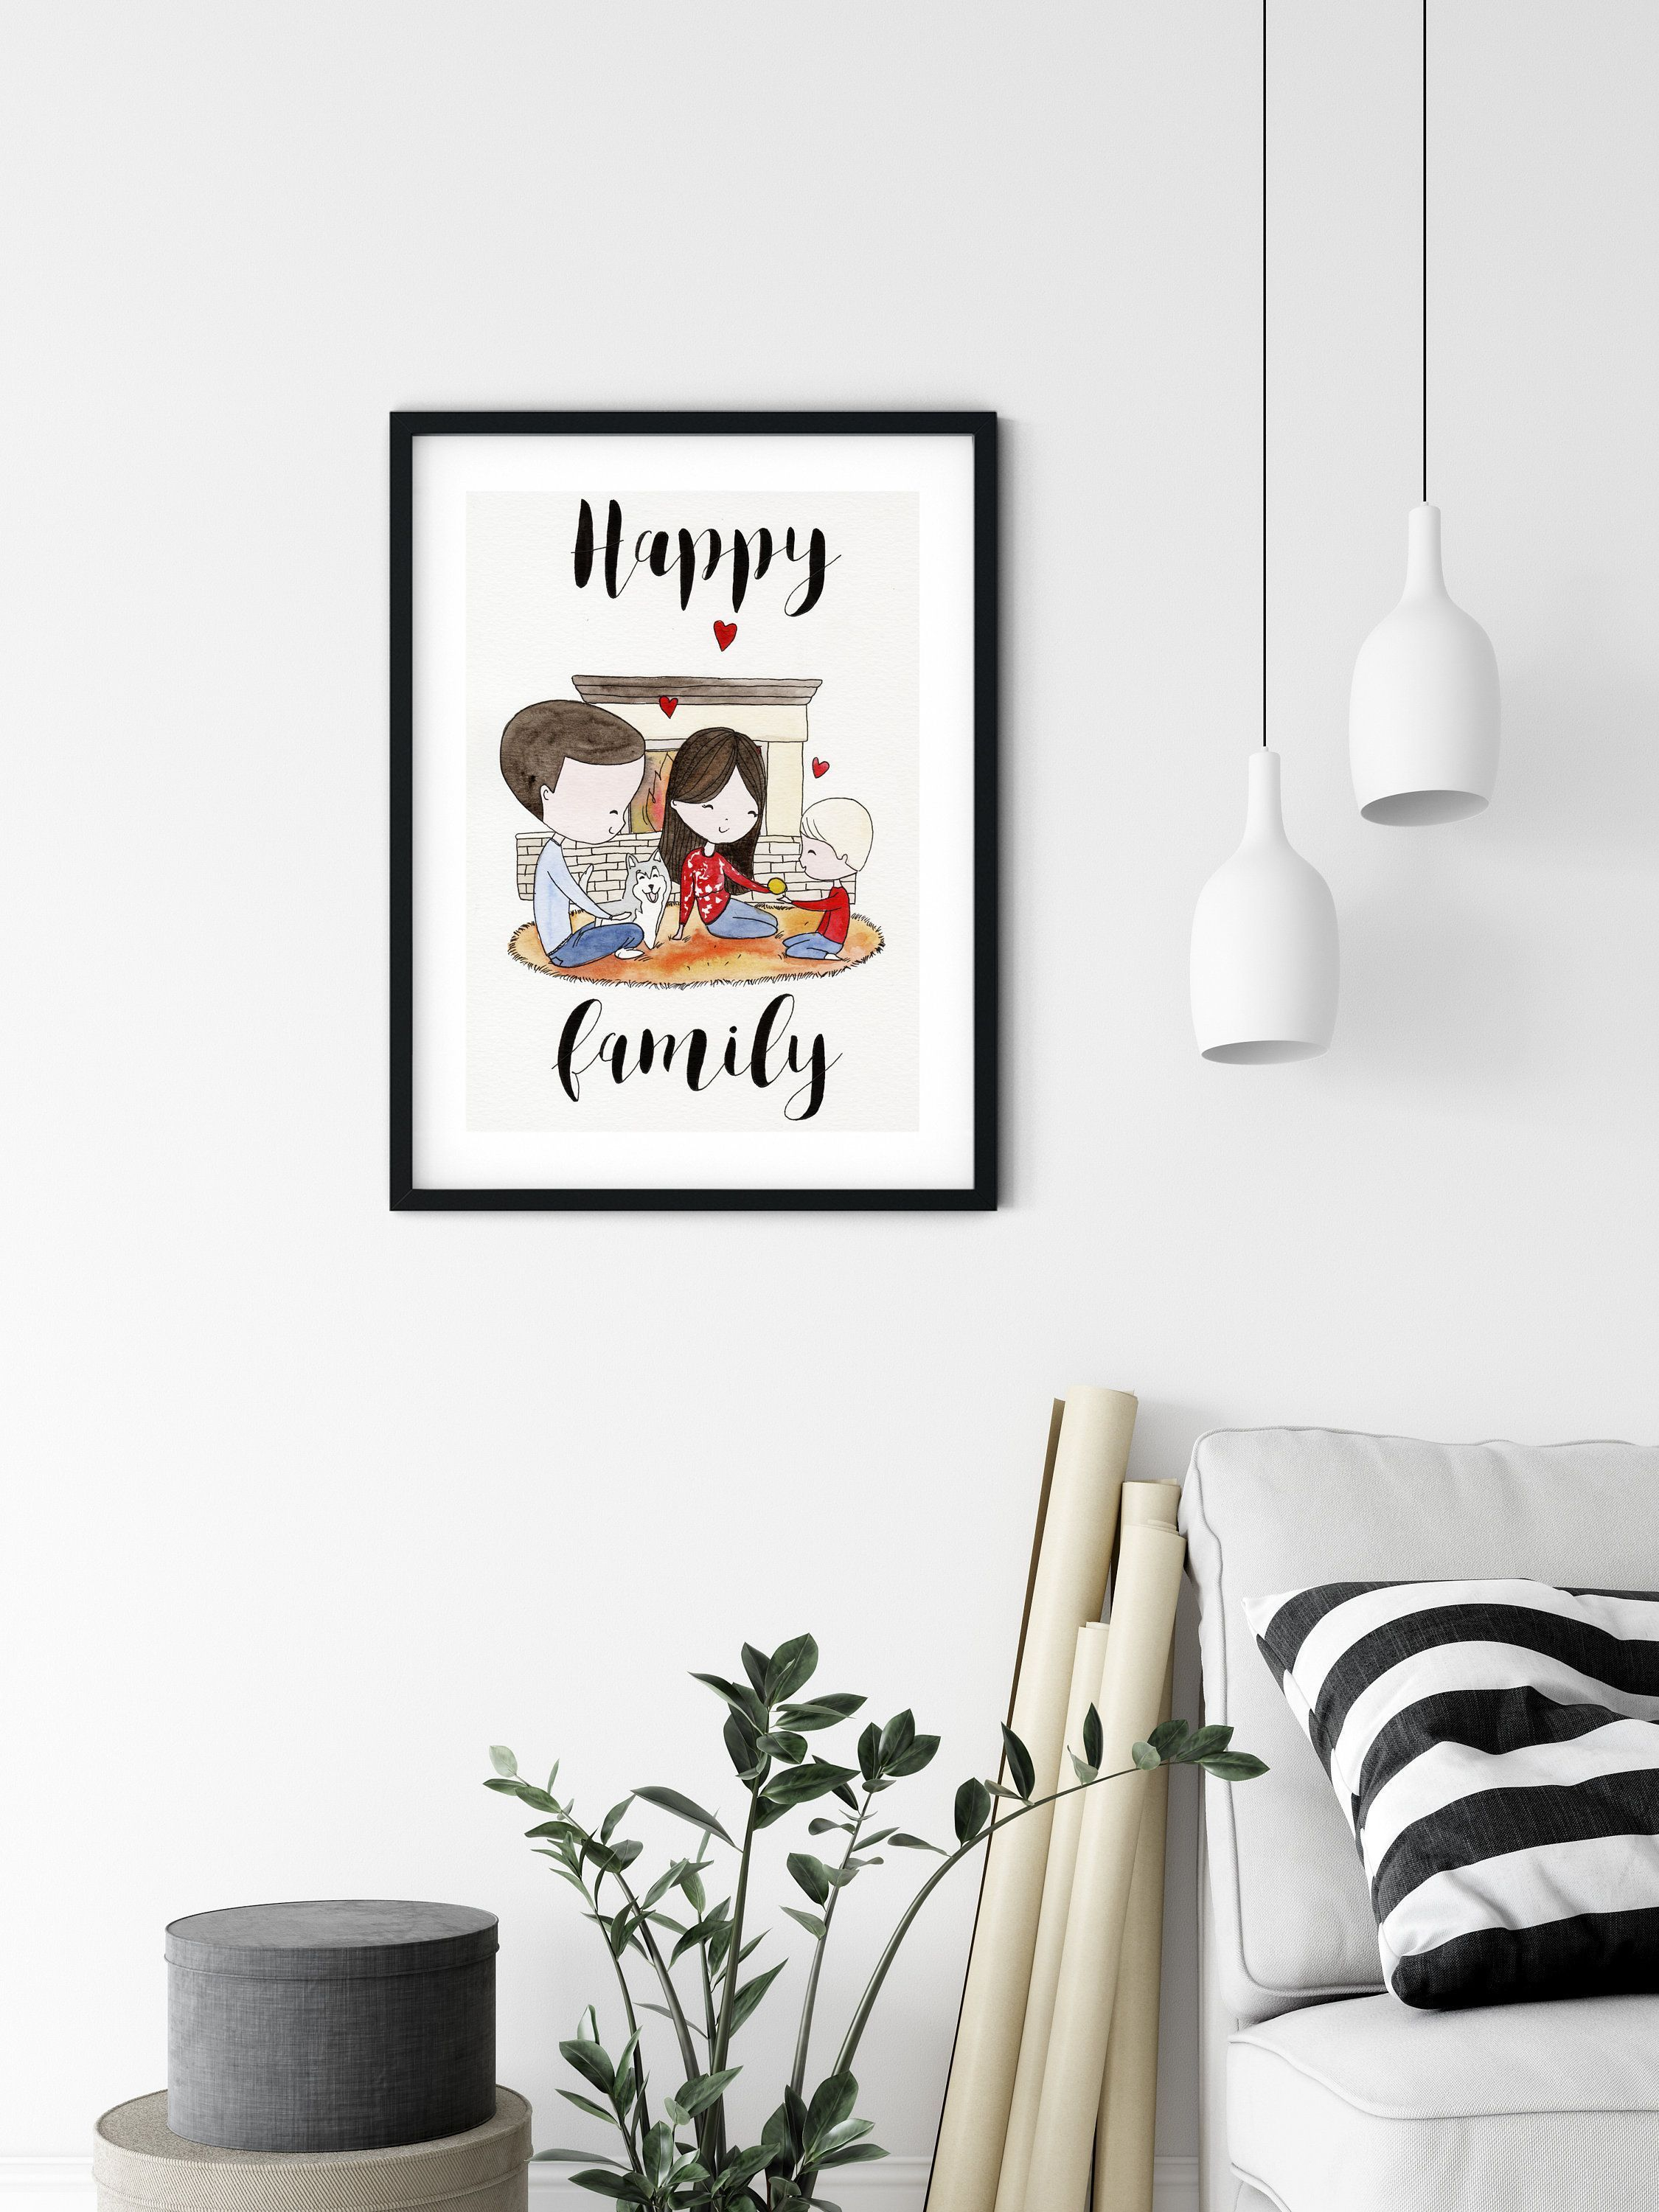 Christmas Gift Ideas For Husband Australia Christmas Gift Ideas Husband Au Christmas Gifts For Husband Boyfriend Anniversary Gifts Christmas Gifts For Men